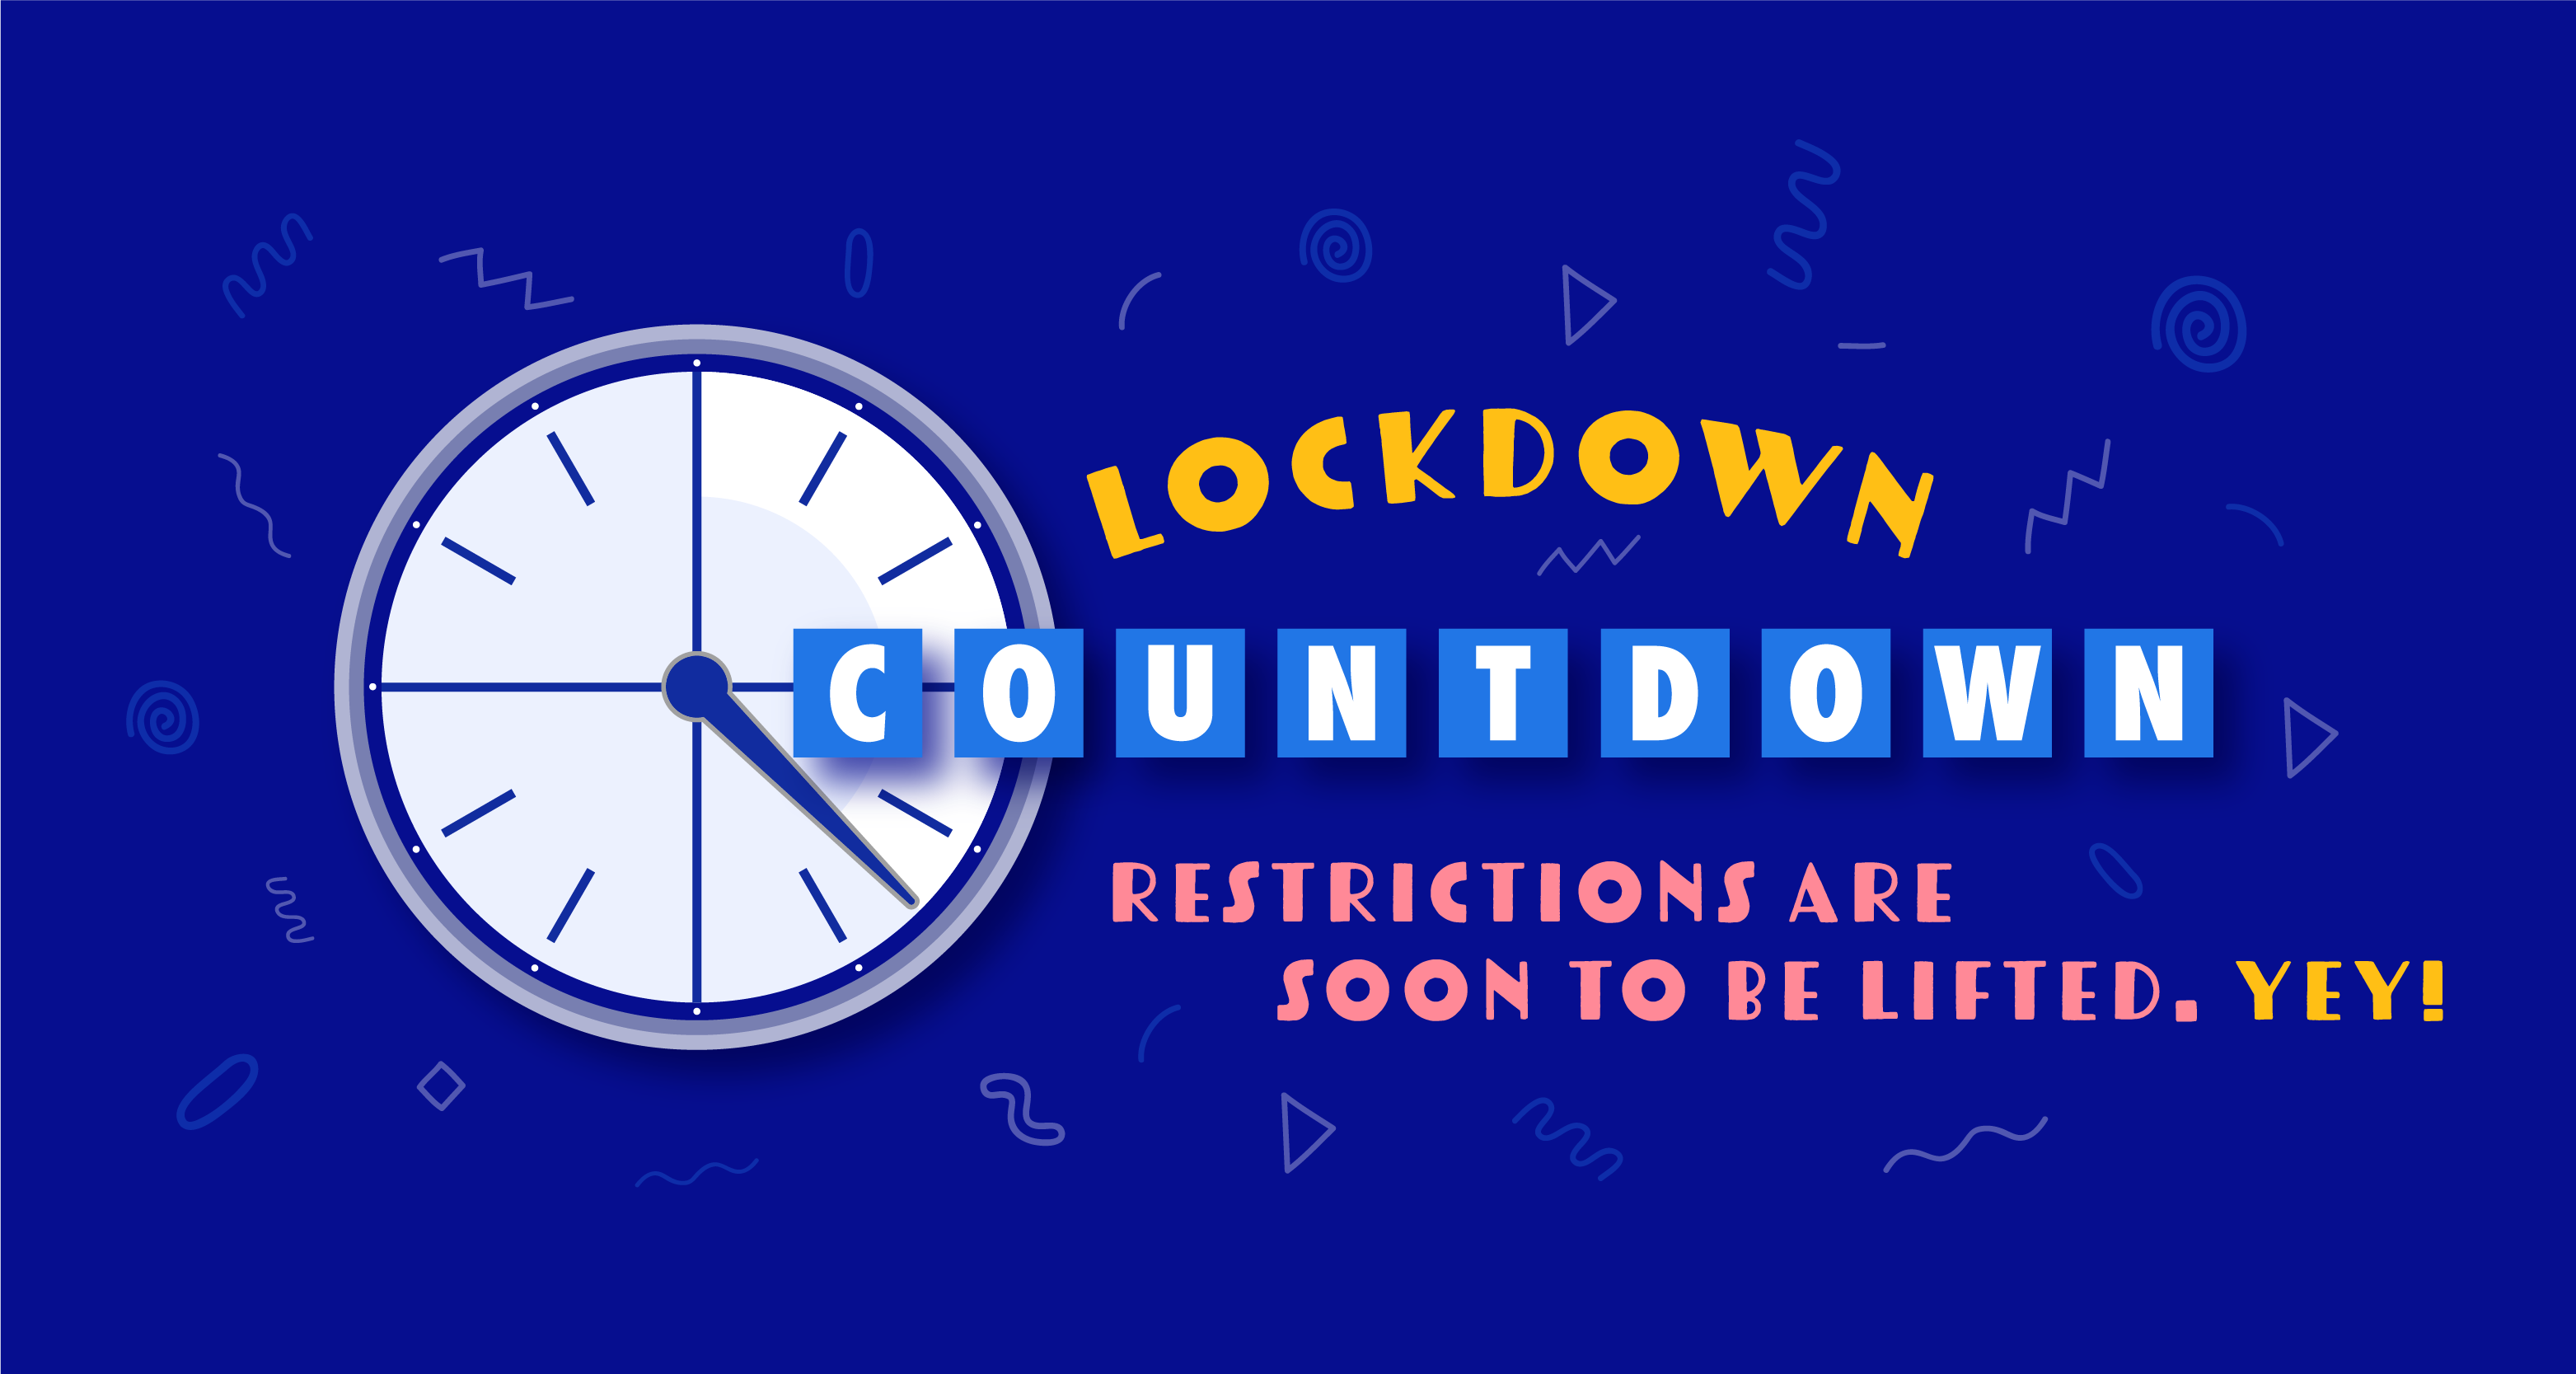 Counting down the days till the end of the lockdown.